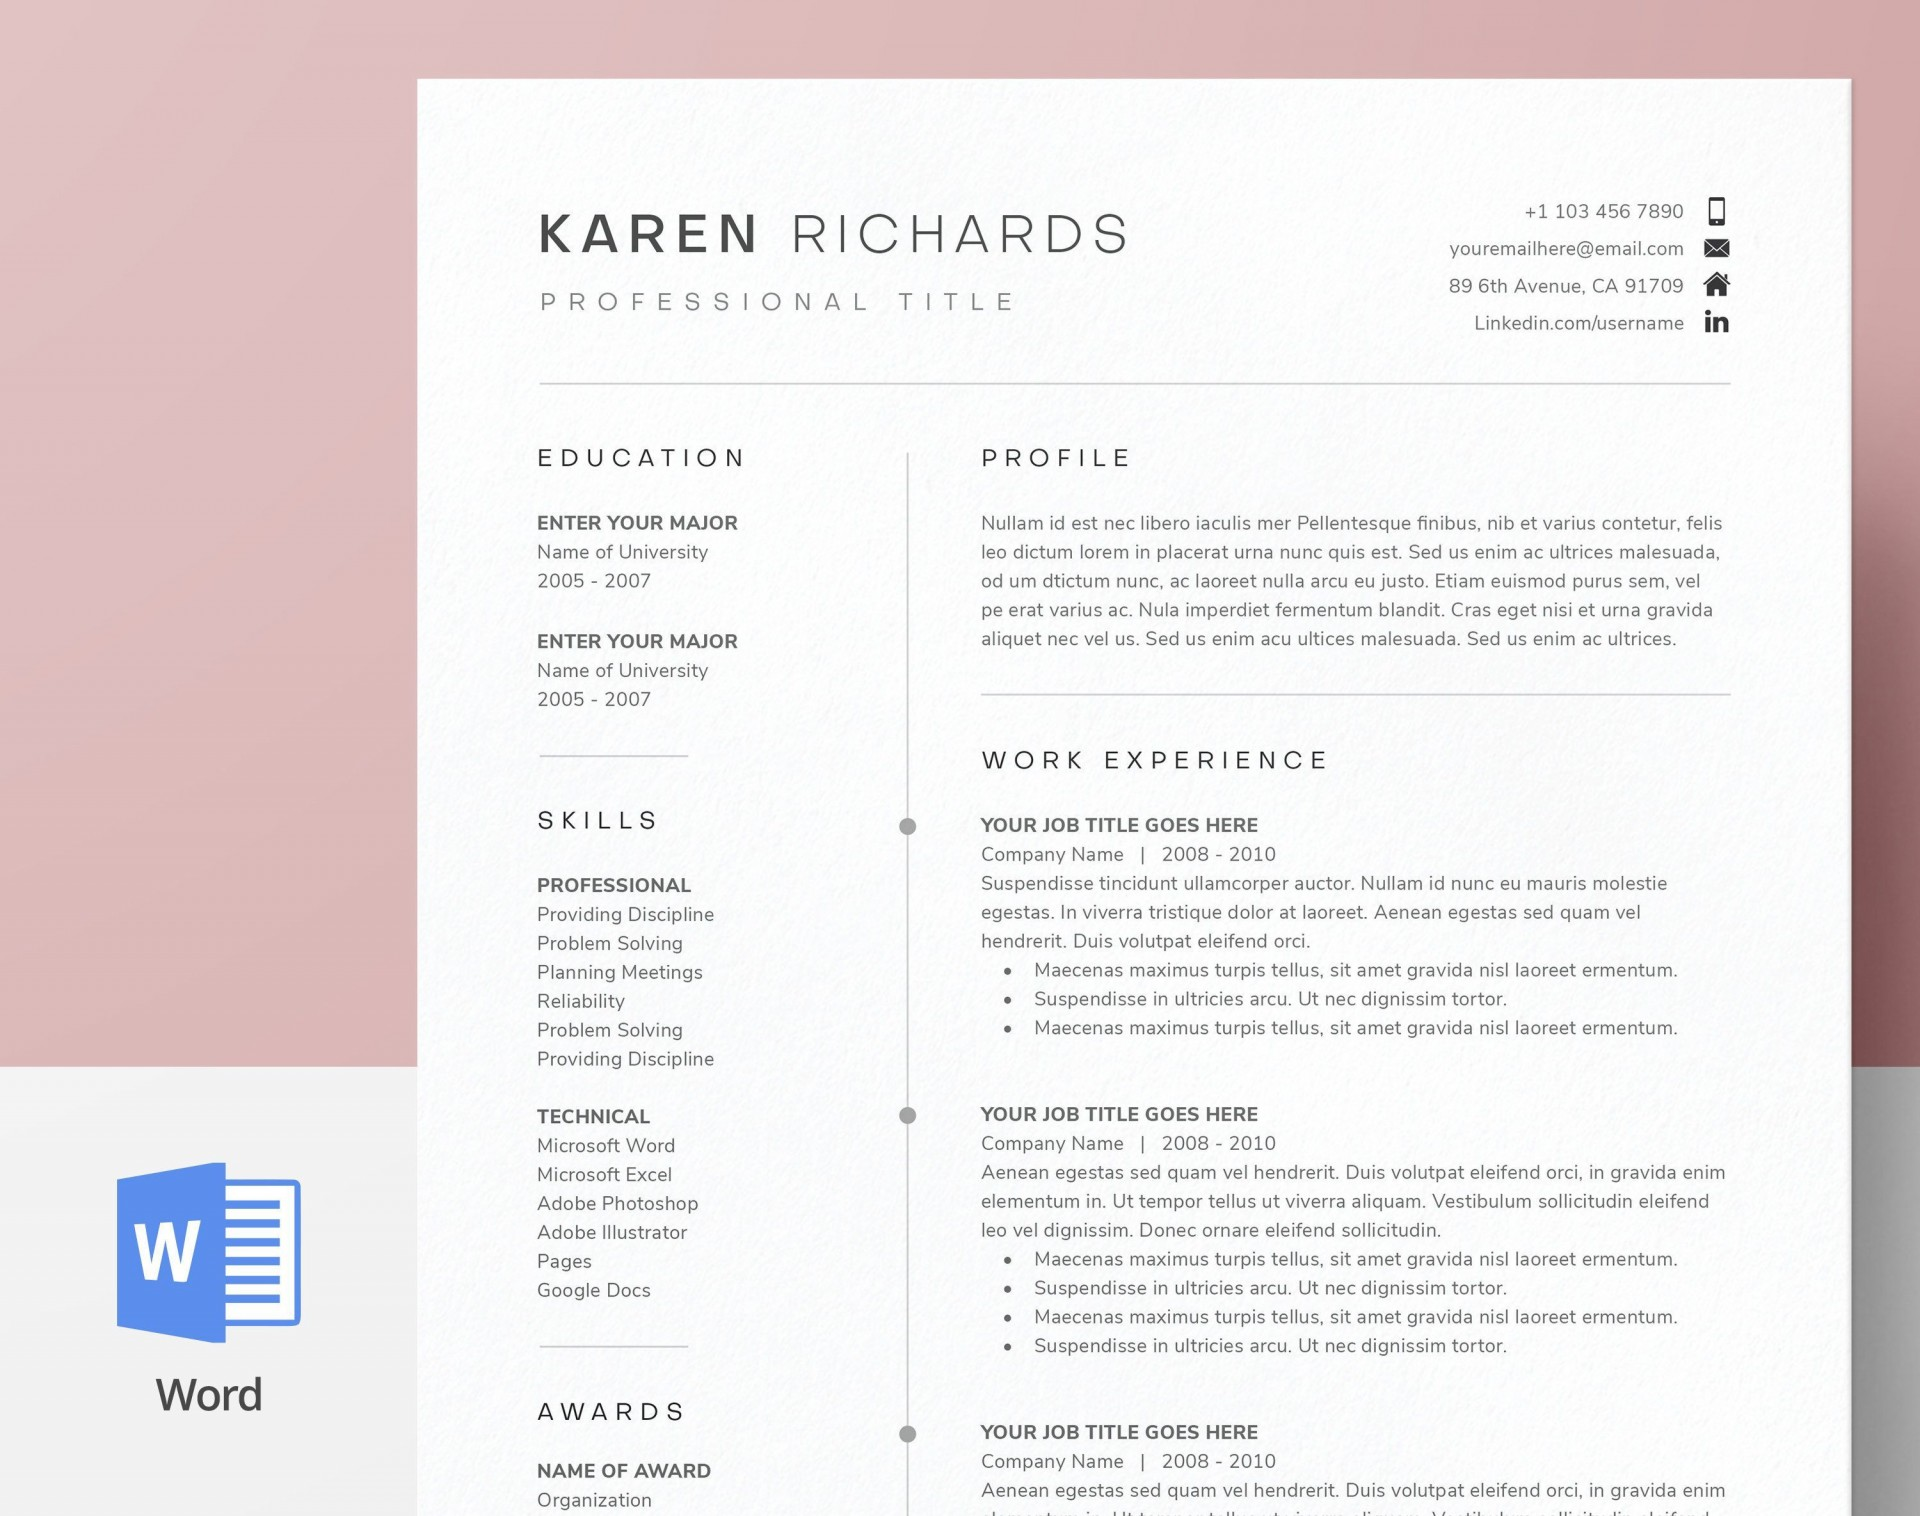 003 Staggering One Page Resume Template Picture  Templates Microsoft Word Free1920